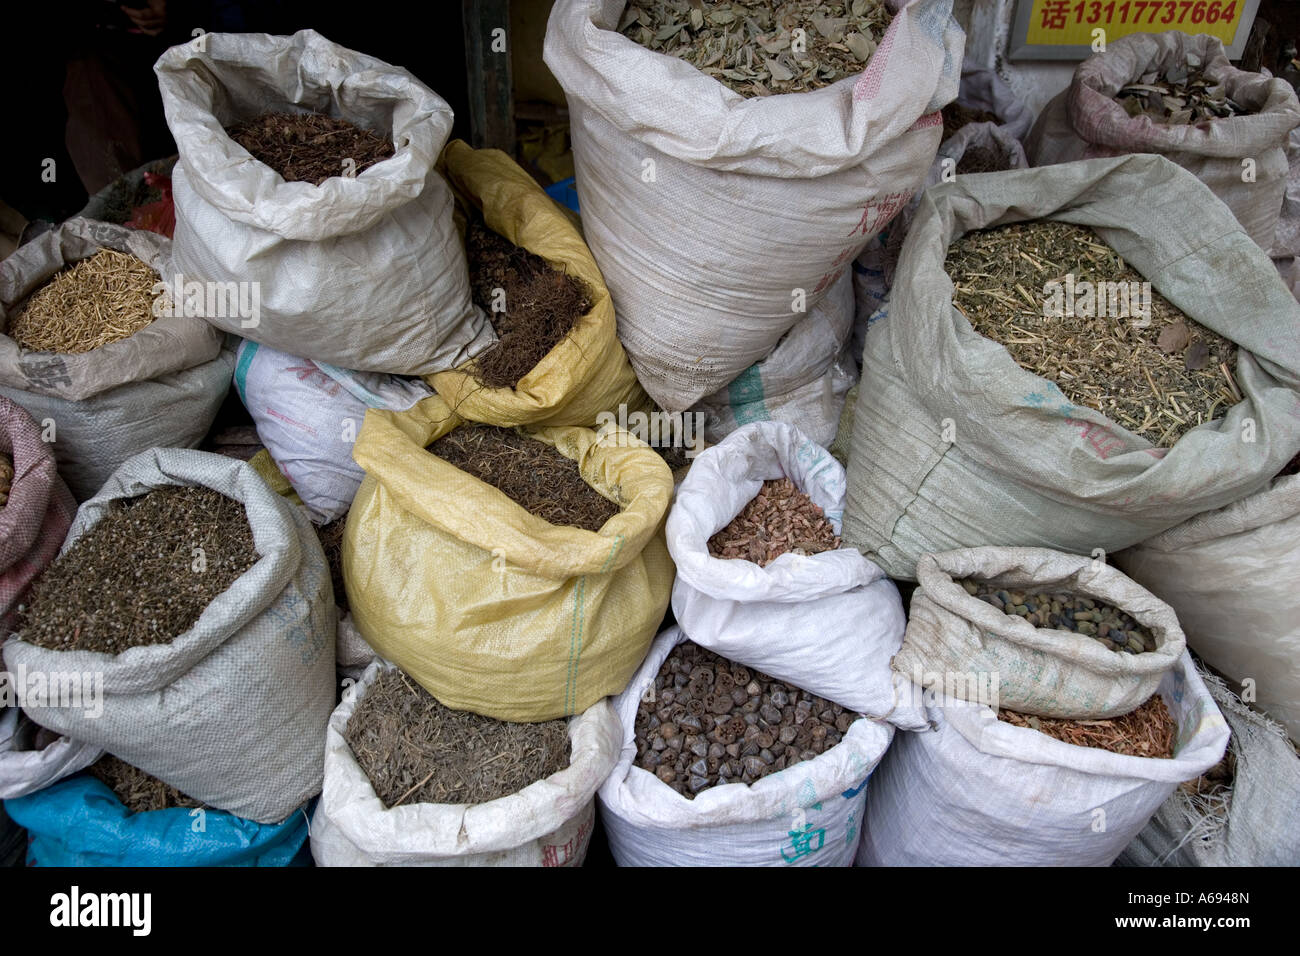 Chinese herbal products - China Guangxi Province Guillin Chinese Herbal Medicine Products